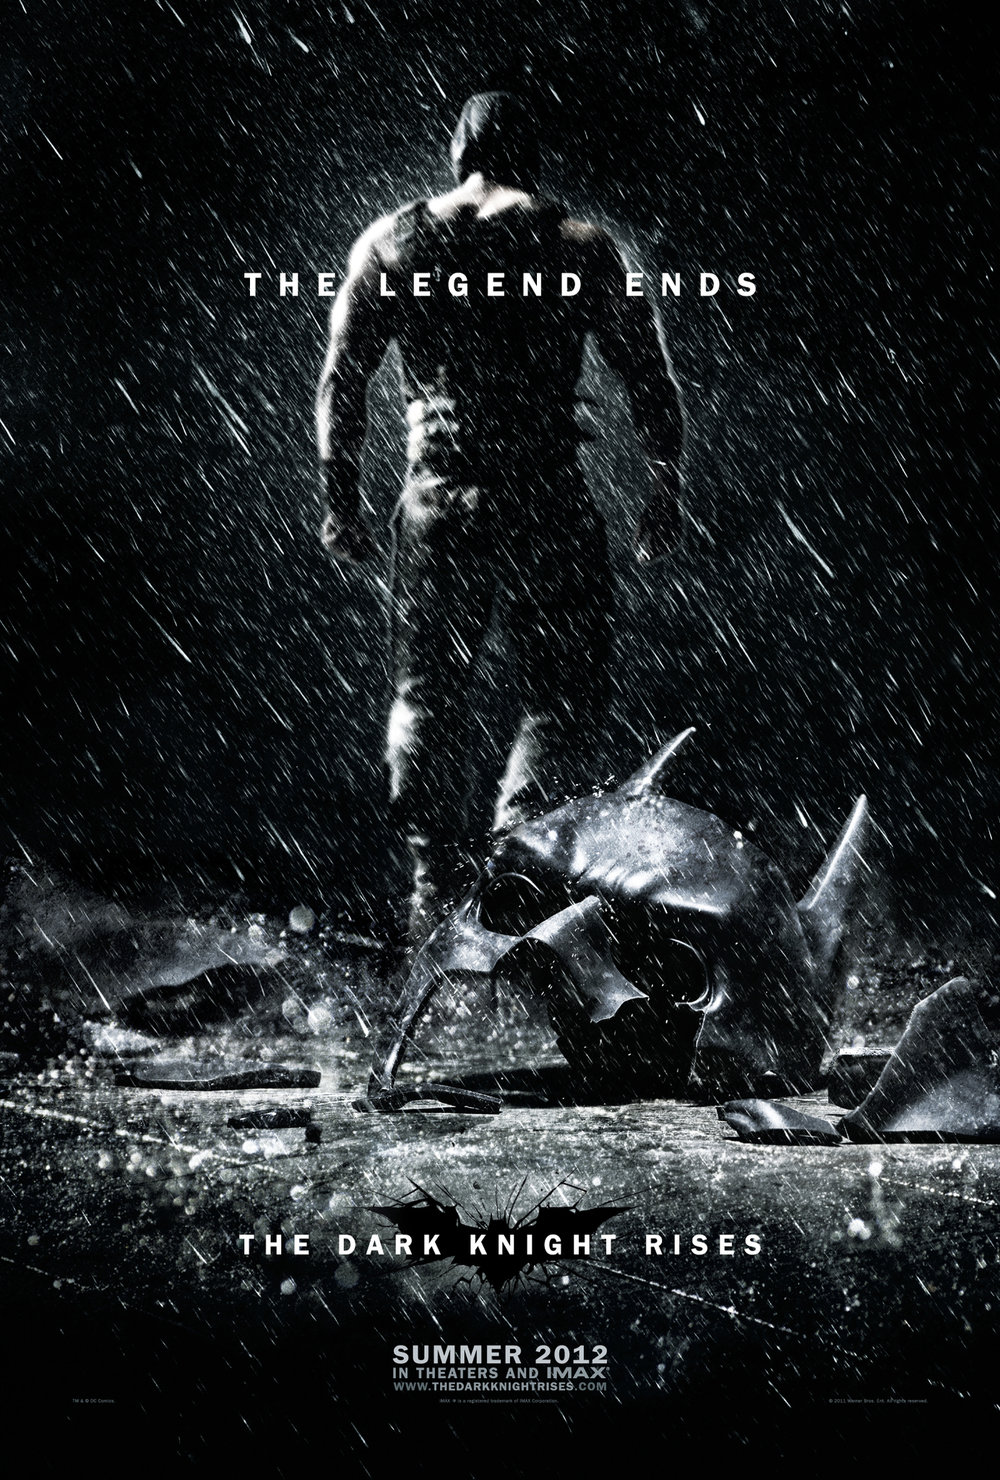 Dark Knight Rises - Release Date: 2012Rating: PG-13Emi Rating: 9/10Following the Dark Knight, I HAD to mention Dark Knight Rises. Closing out this trilogy, this is my favorite movie in the series. Not only did Tom Hardy to a fantastic in the role of Bane, but the character development of Bruce Banner comes to a climax in this piece. Set nearly a decade after Dark Knight rises, this film shows Gotham in another time of turmoil that calls for Batman to come out of exile to confront the city he holds dear.